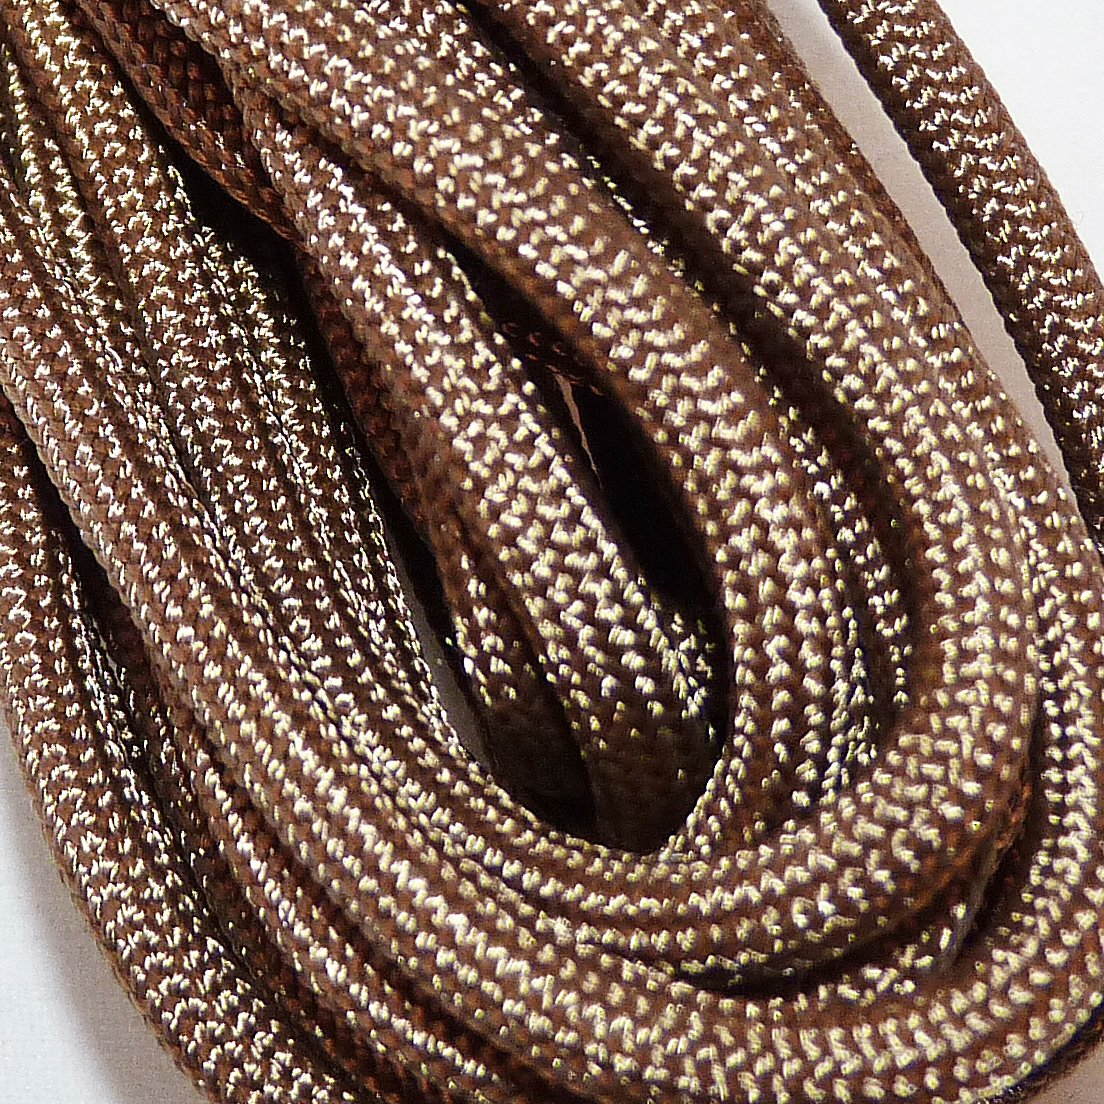 MilSpec Paracord Coyote Brown 498, 1,010 ft. Spool, Military Survival Braided Parachute 550 Cord. Use with Paracord Tools for Tent Camping, Hiking, Hunting Ropes, Bracelets & Projects. Plus 2 eBooks. by Paracord 550 Mil-Spec (TM) (Image #9)